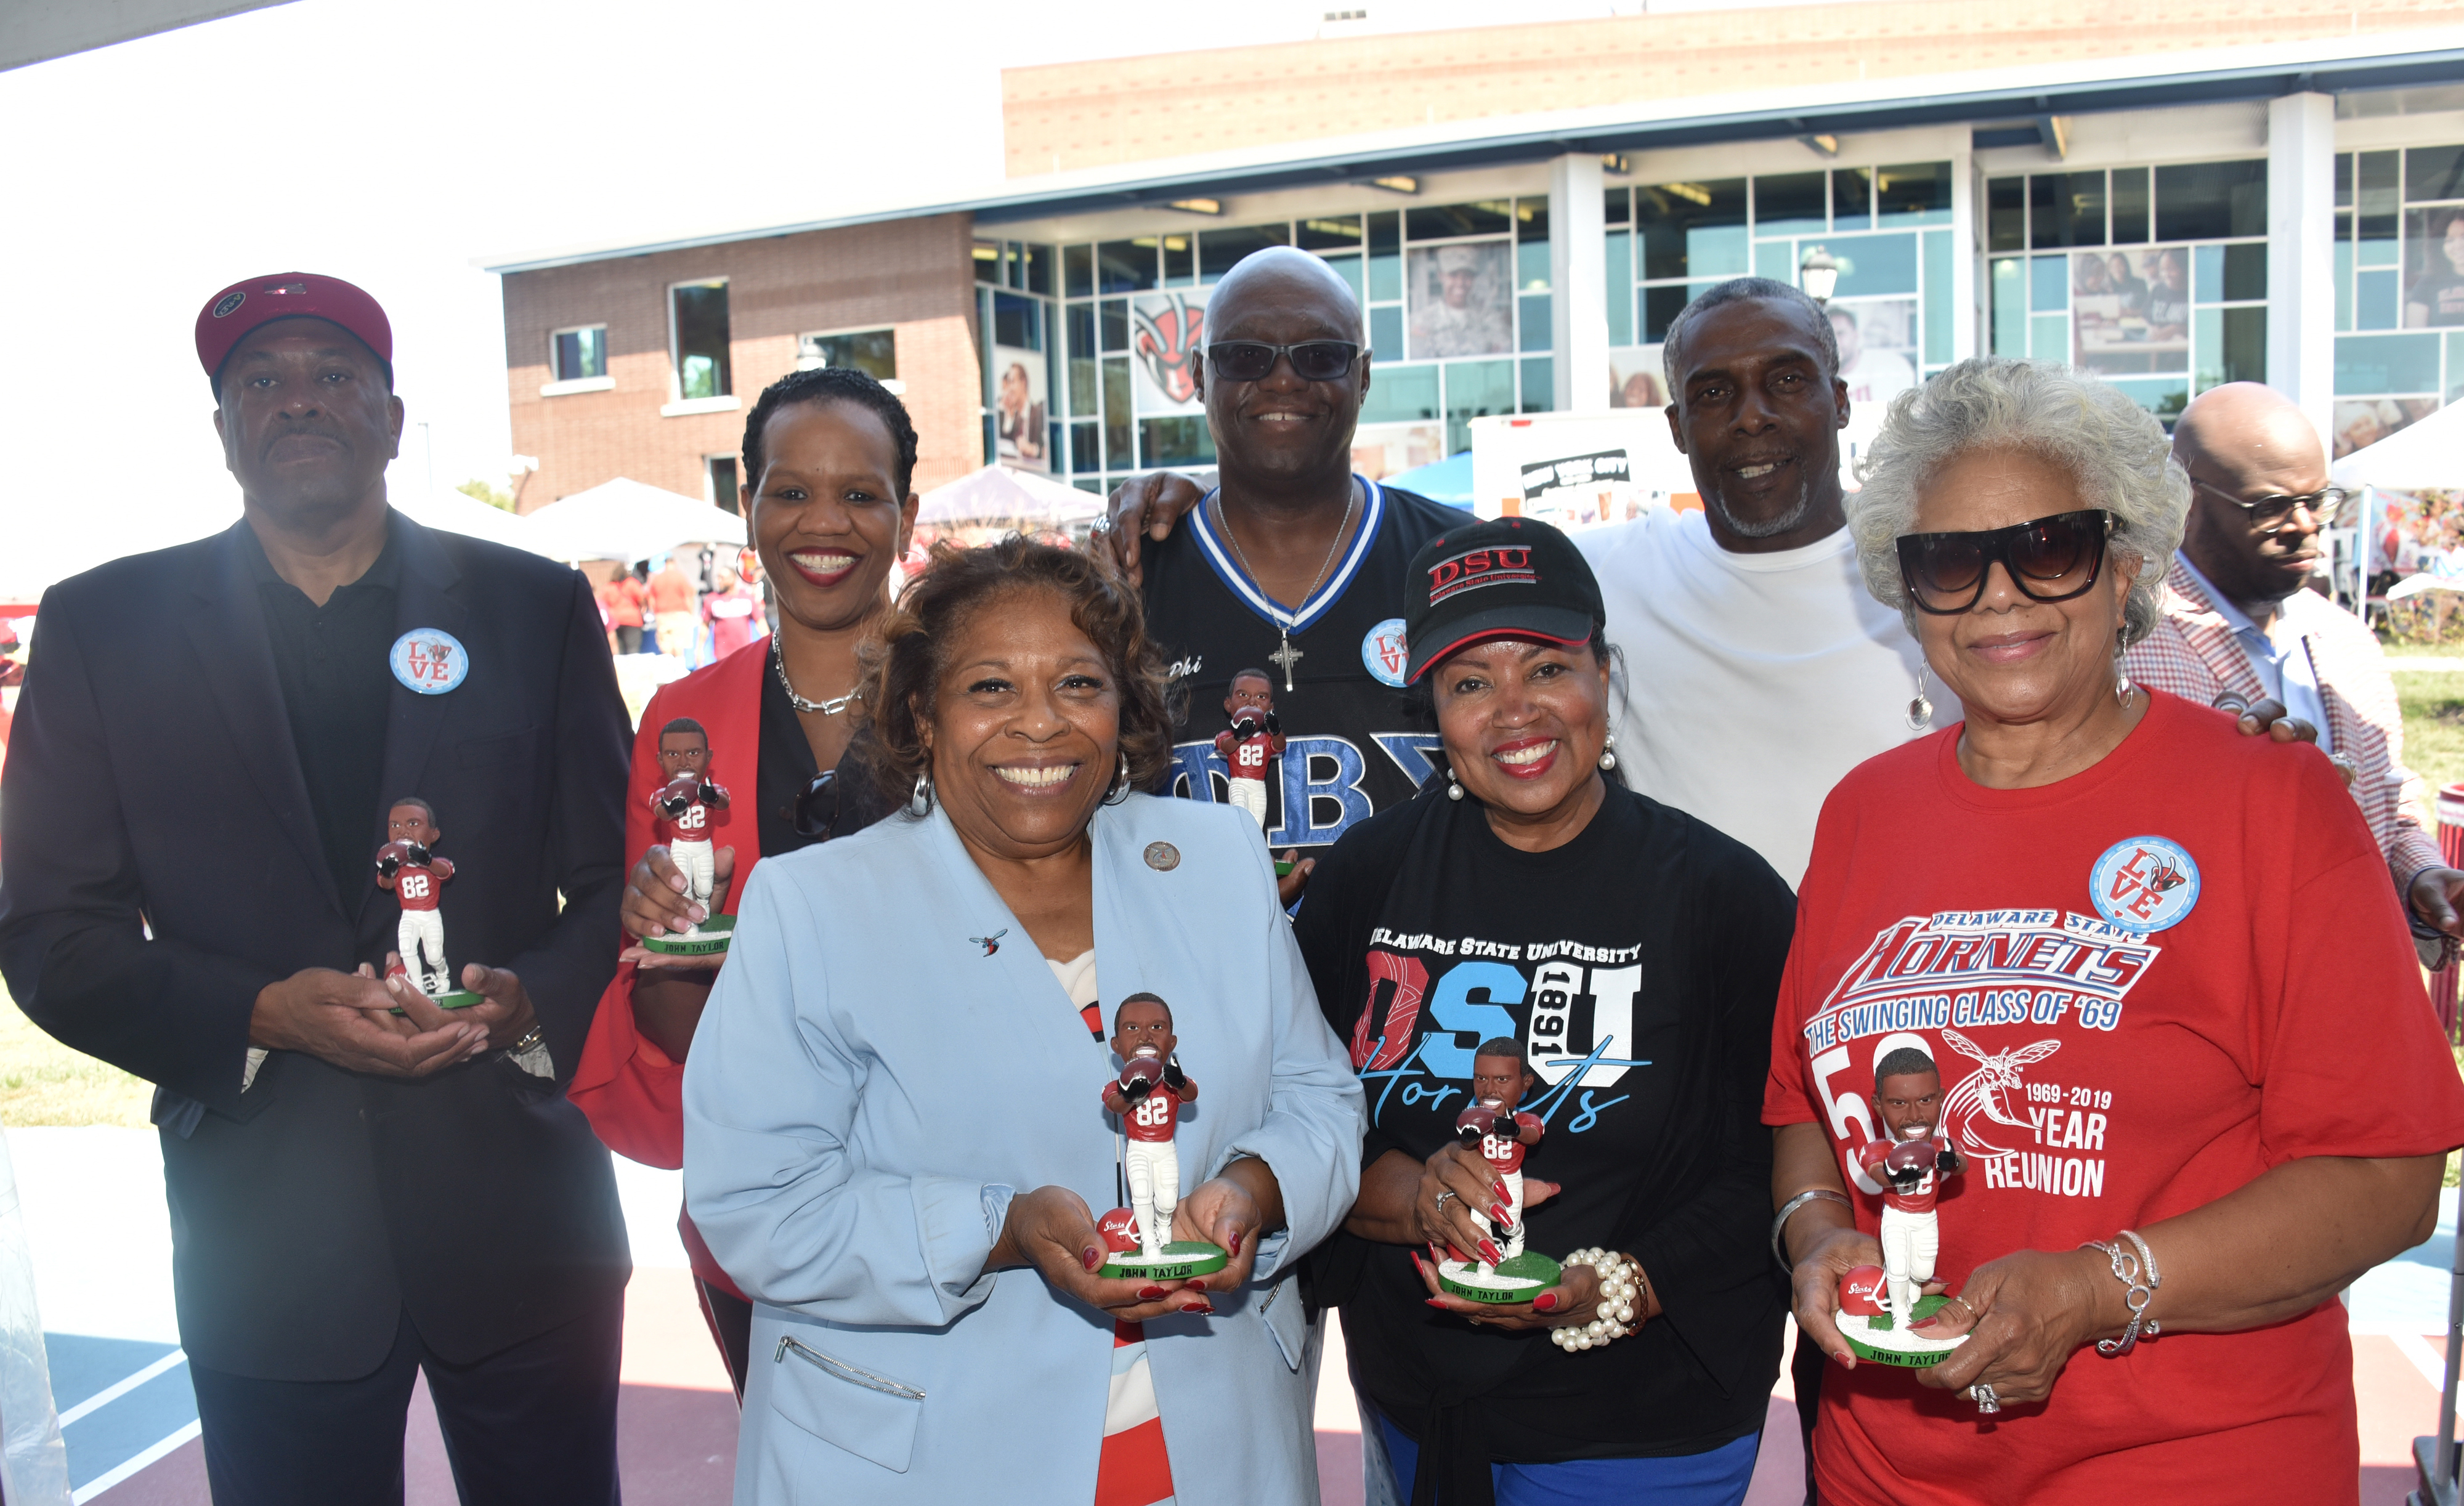 Hornet football alumnus and former NFL star John Taylor (2nd from the right) presents members of the University Board of Trustees and Dr. Wilma Mishoe with a signed bobble head likeness of himself.